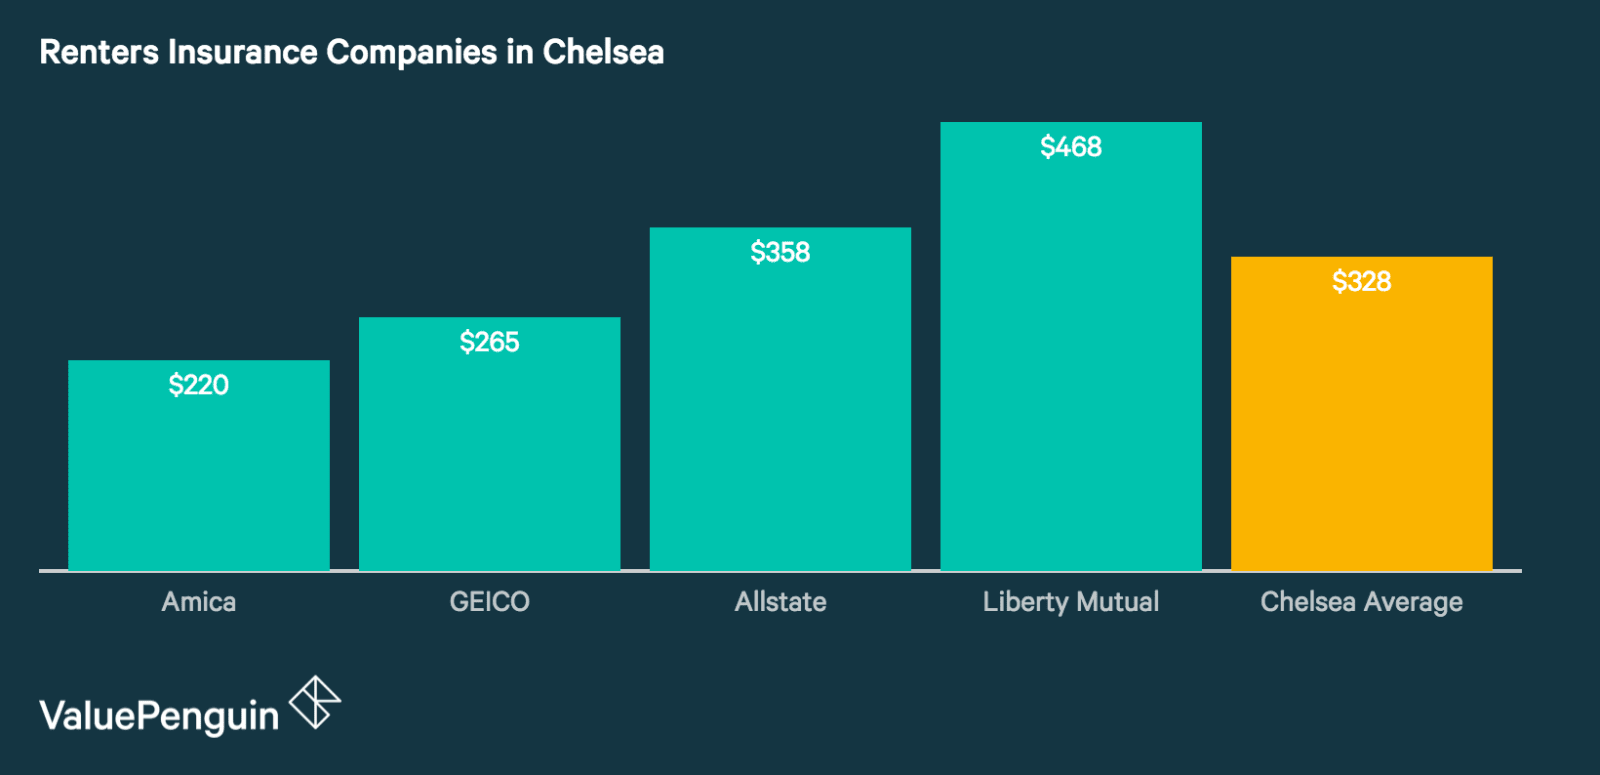 Renters Insurance Rates in Chelsea